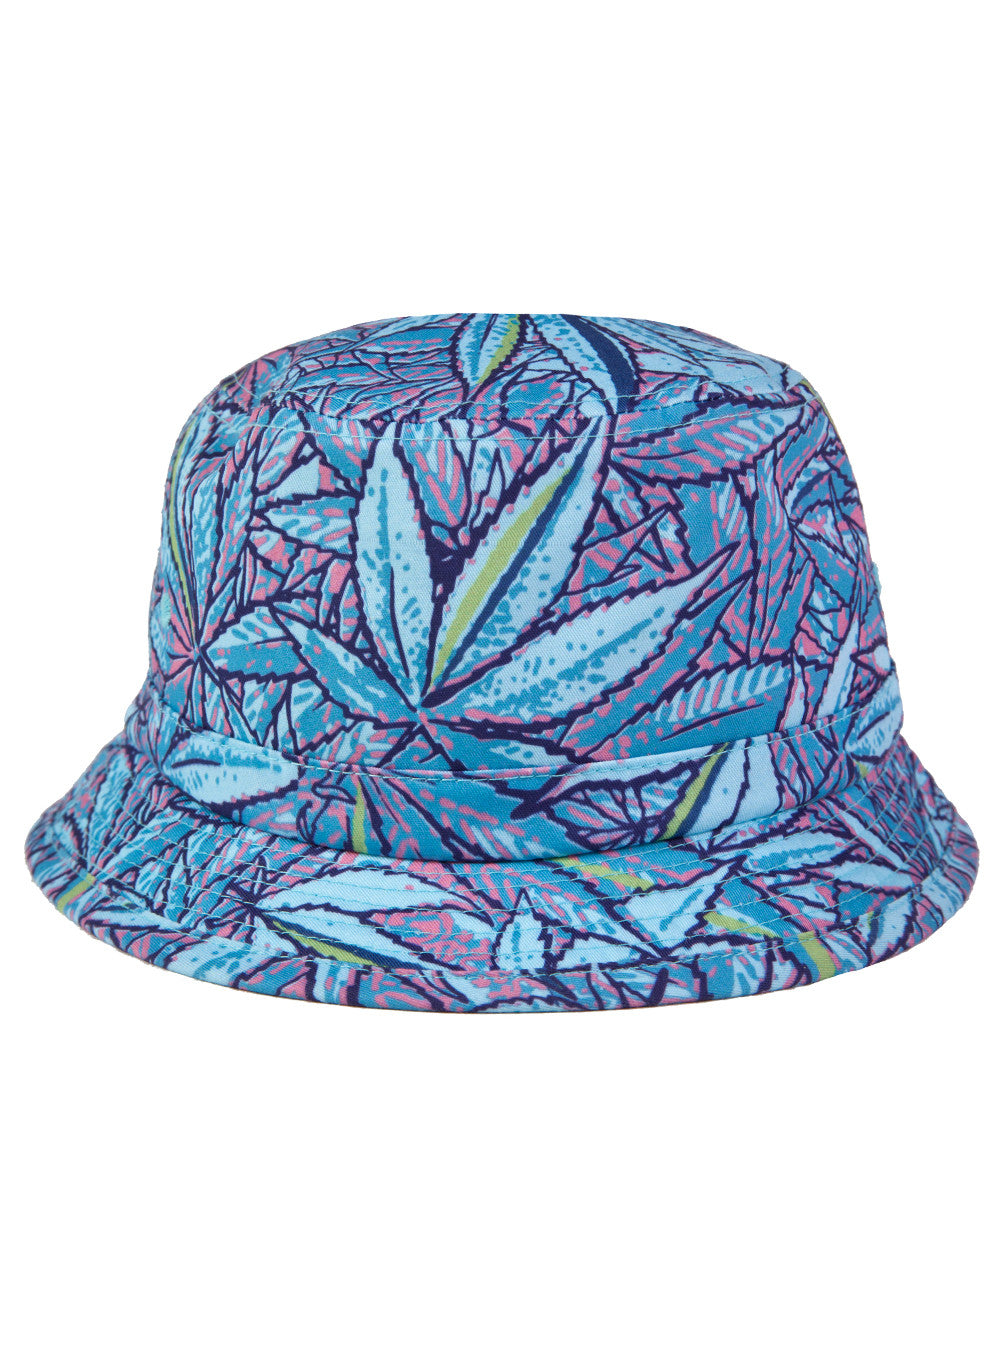 MISHKA Mr. Nice Guy Bucket